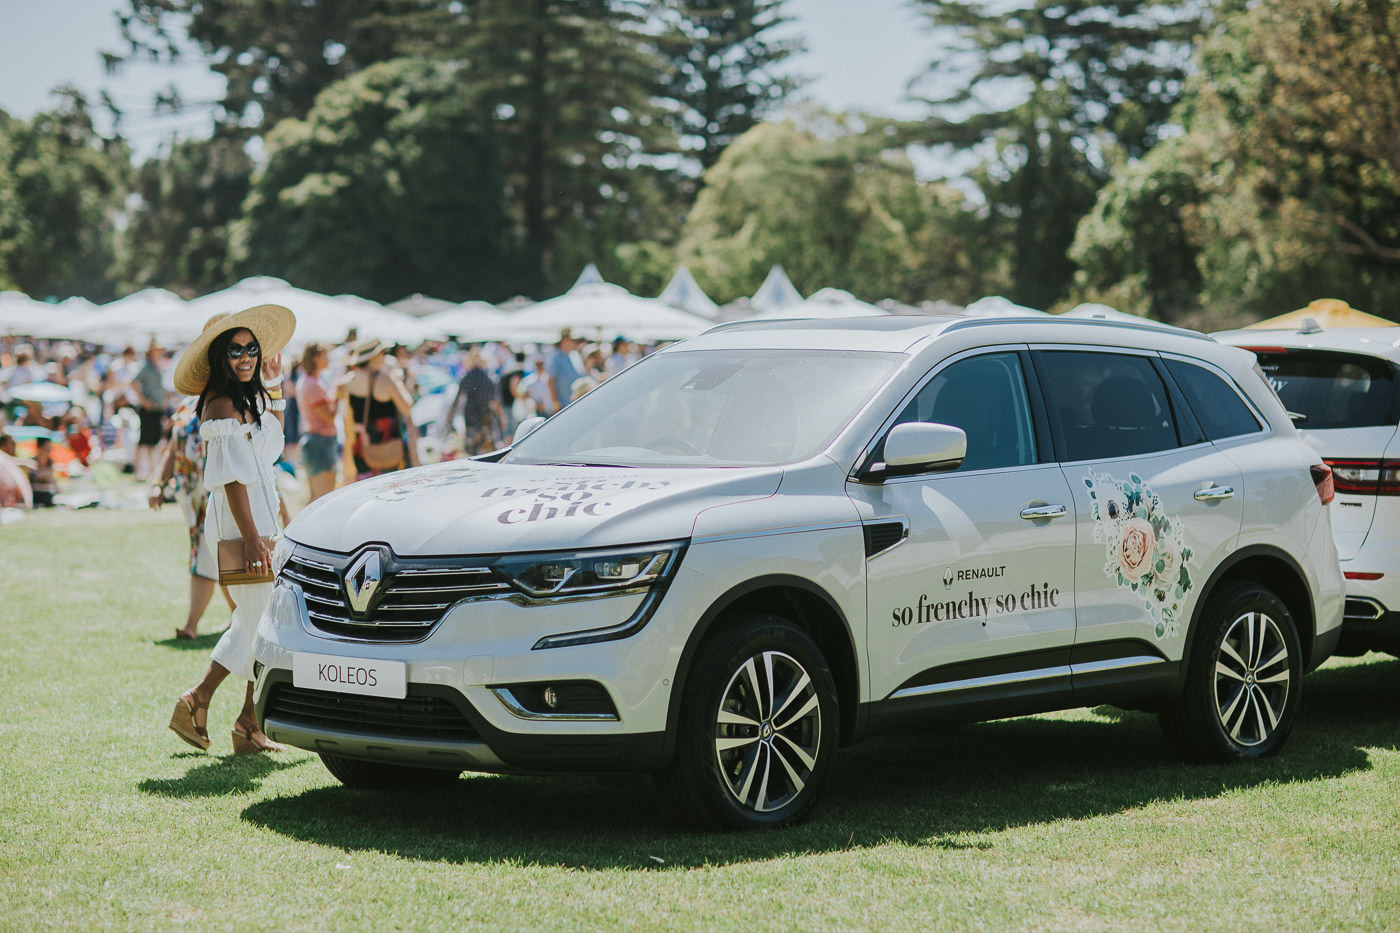 renault sponsoring so frenchy so chic festival